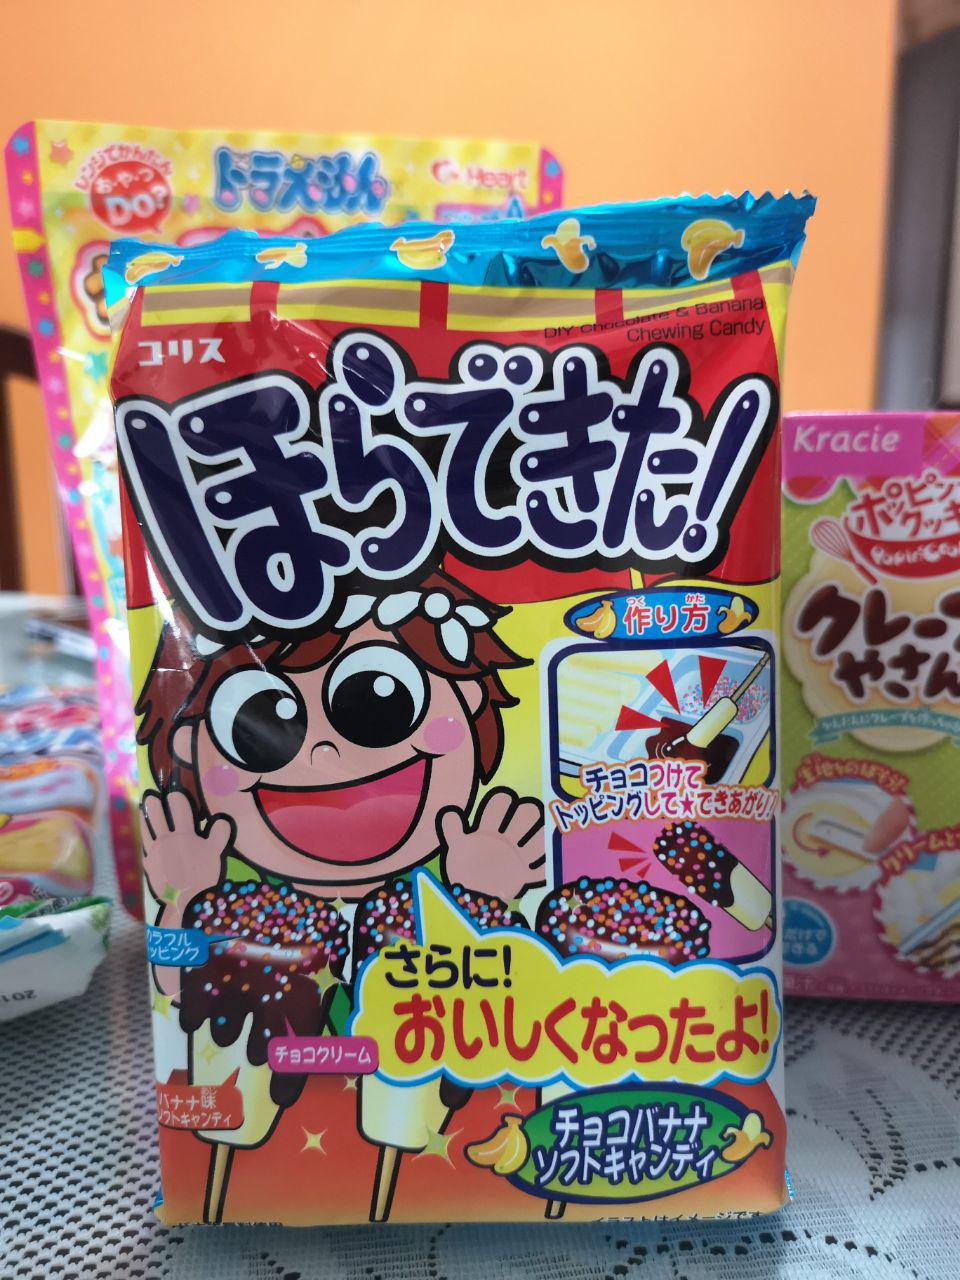 Rice-Media-Miniature-Japanese-Candy-Review-2